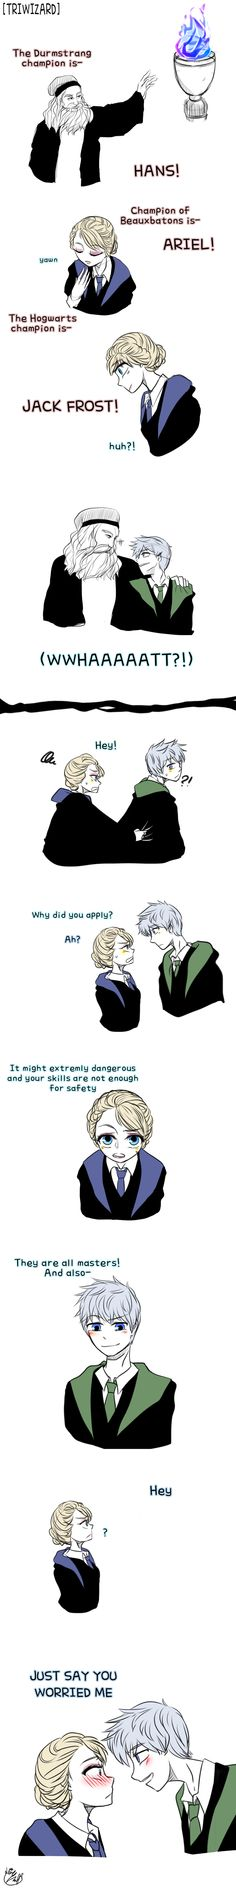 Rise of the Guardians' Jack Frost and Frozen's Elsa | J.K. Rowling's Harry Potter / Triwizard-Champion Selection by Lime-Hael on deviantART